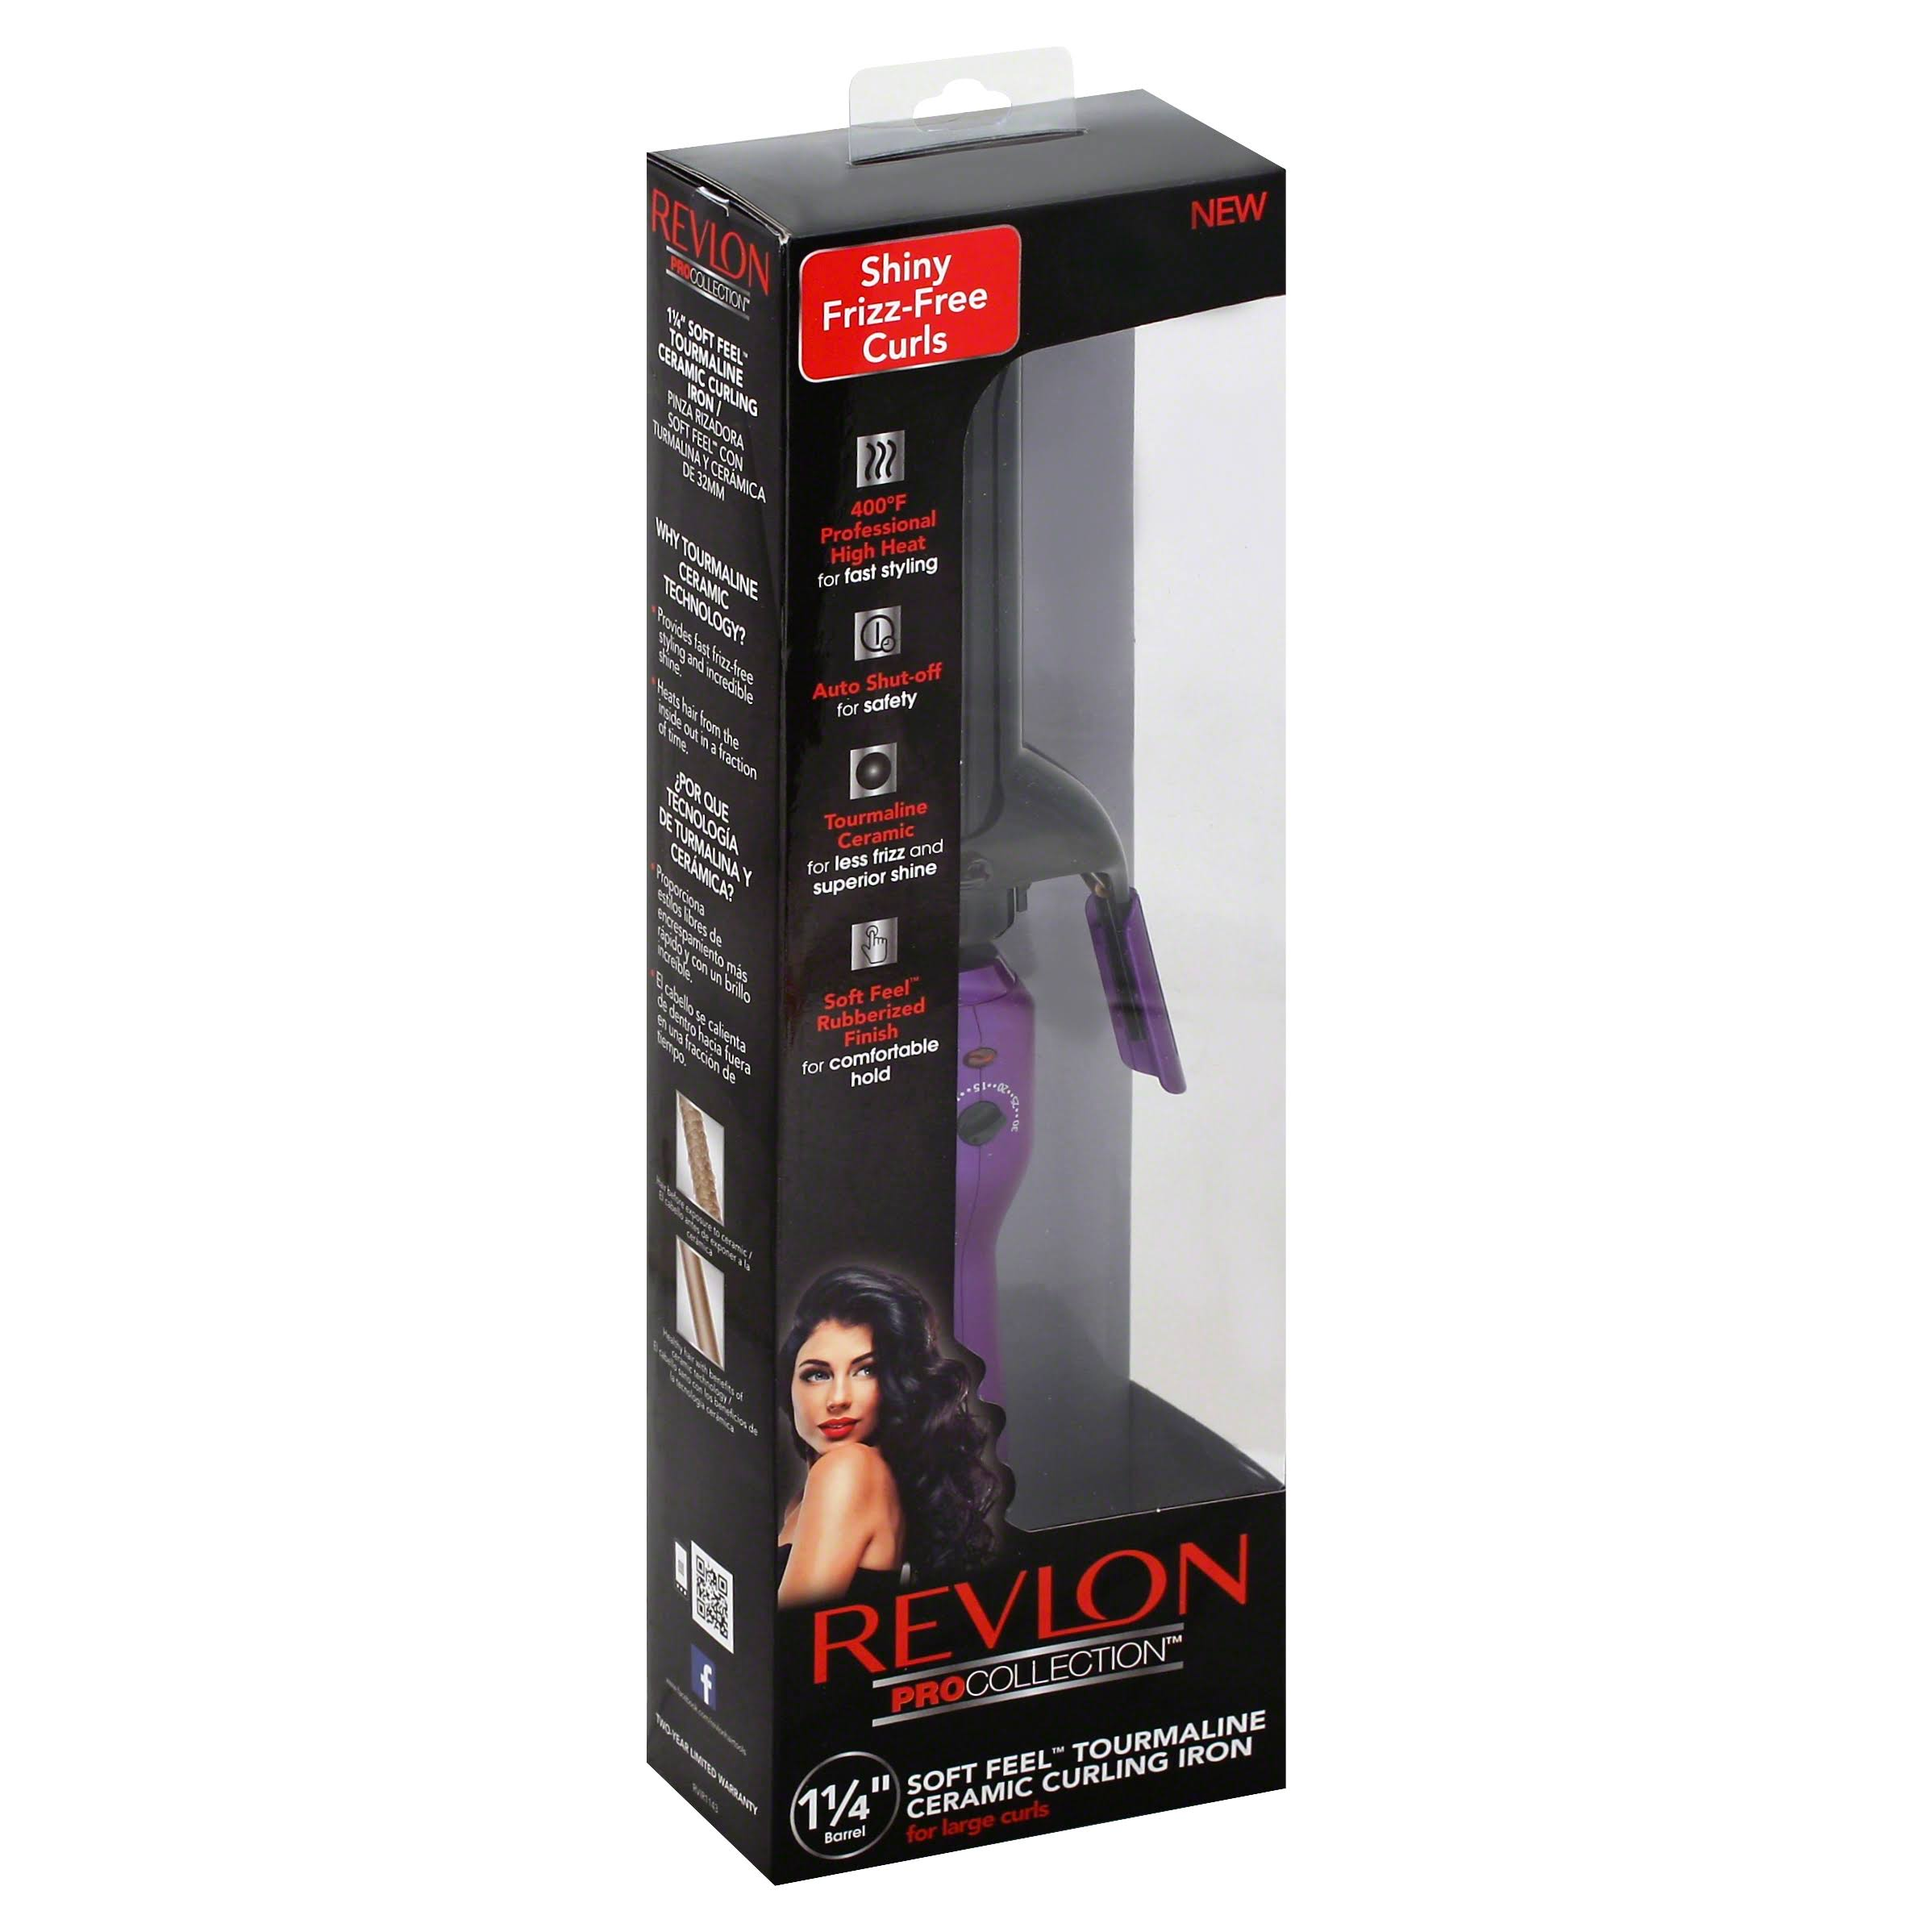 Revlon Tourmaline Ceramic Curling Iron - 1-1/4in